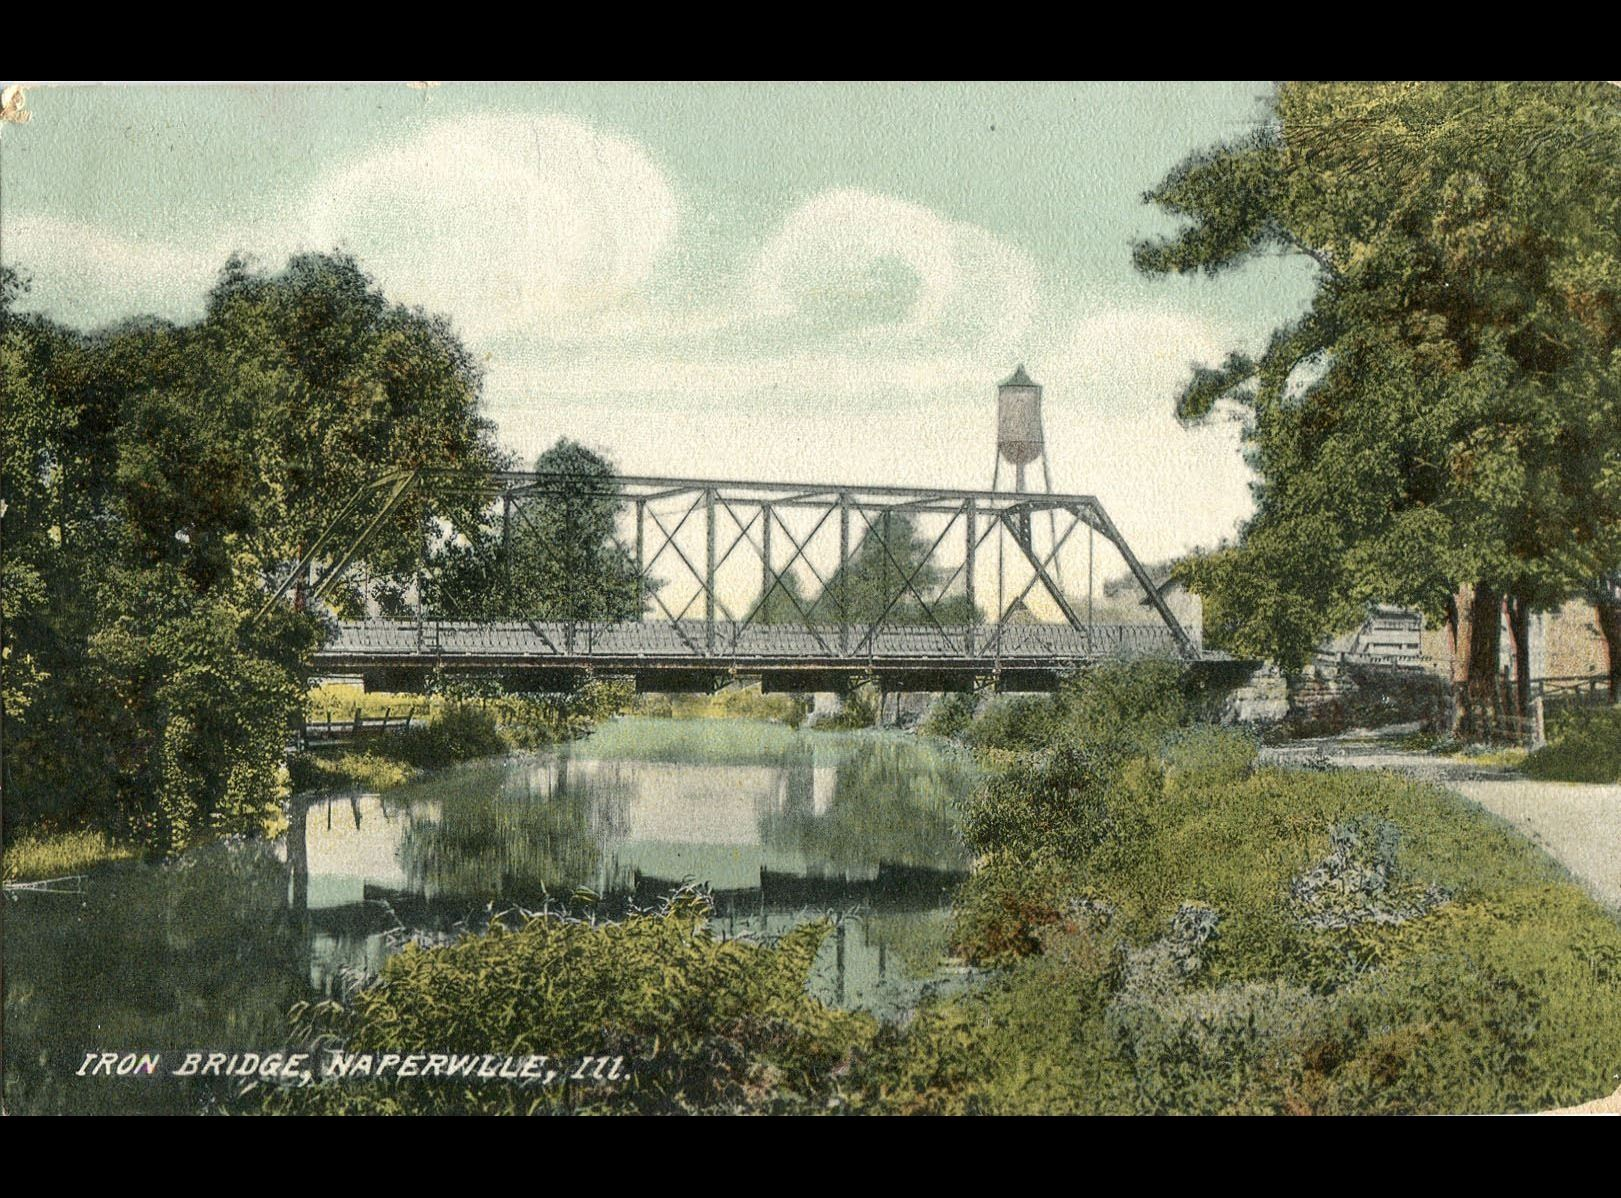 Washington Street bridge, postmarked December 3, 1903